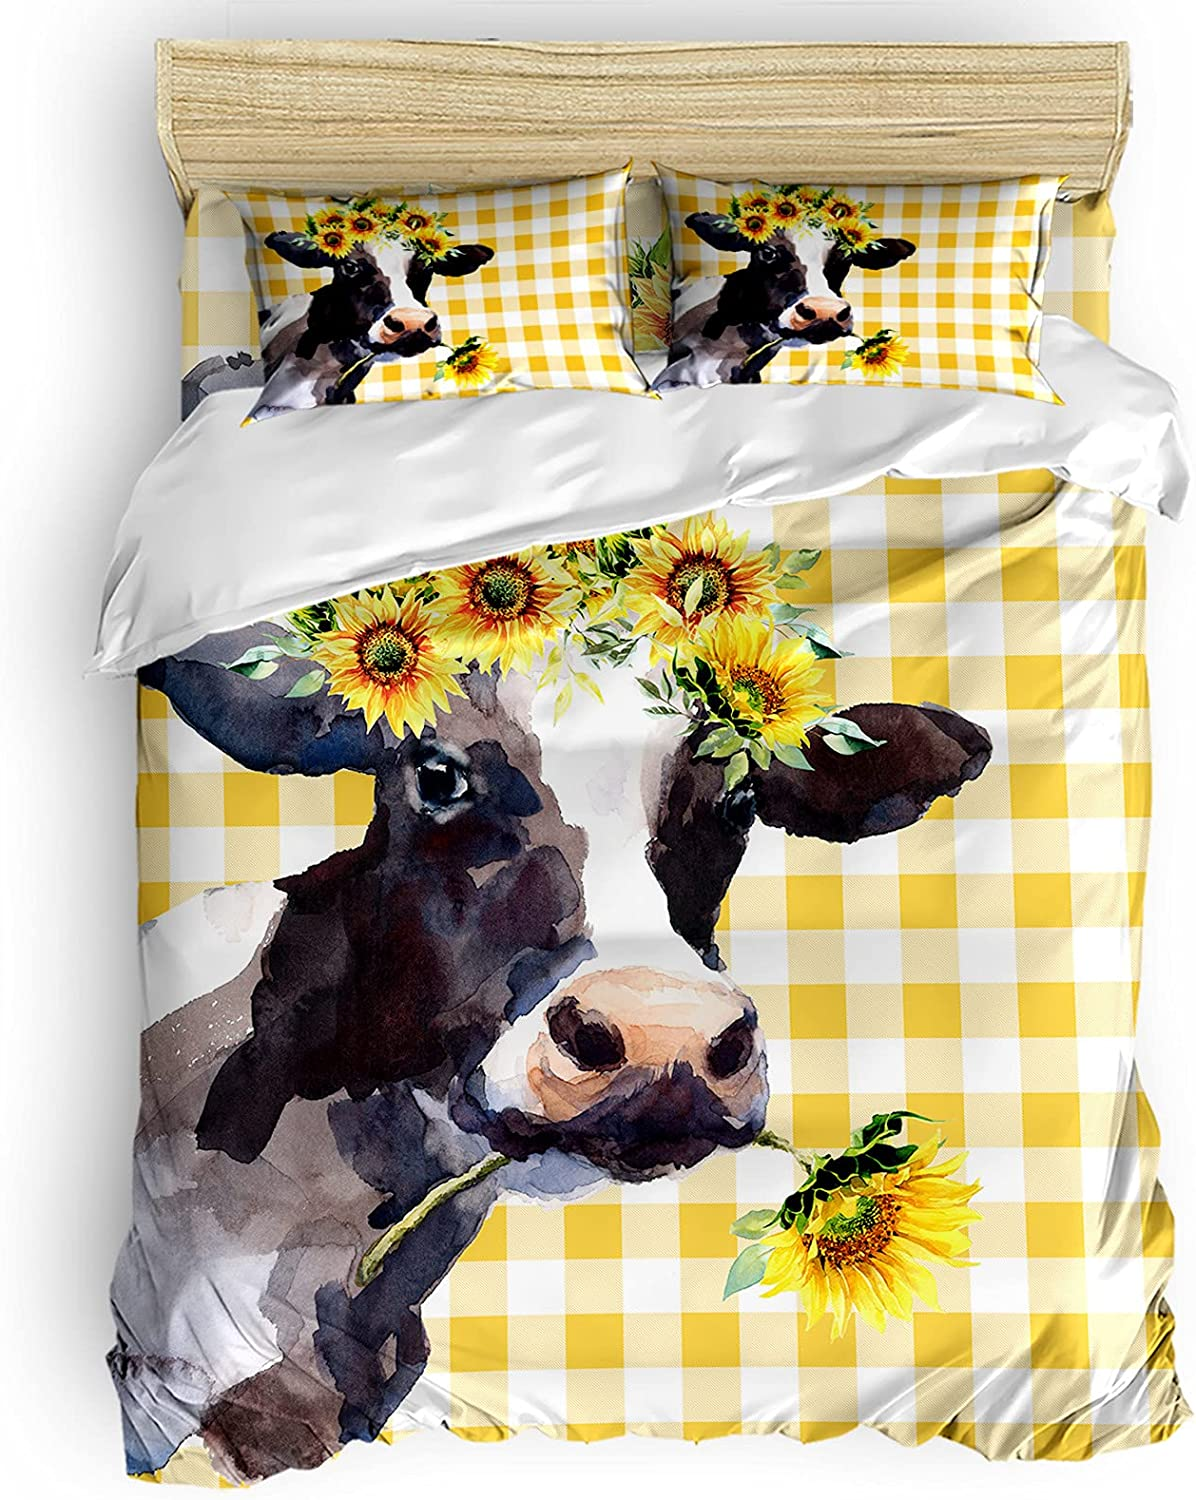 Funny Cattle Sunflower Max 83% OFF Chicago Mall 4 Pieces Bedding Sets California Fla King